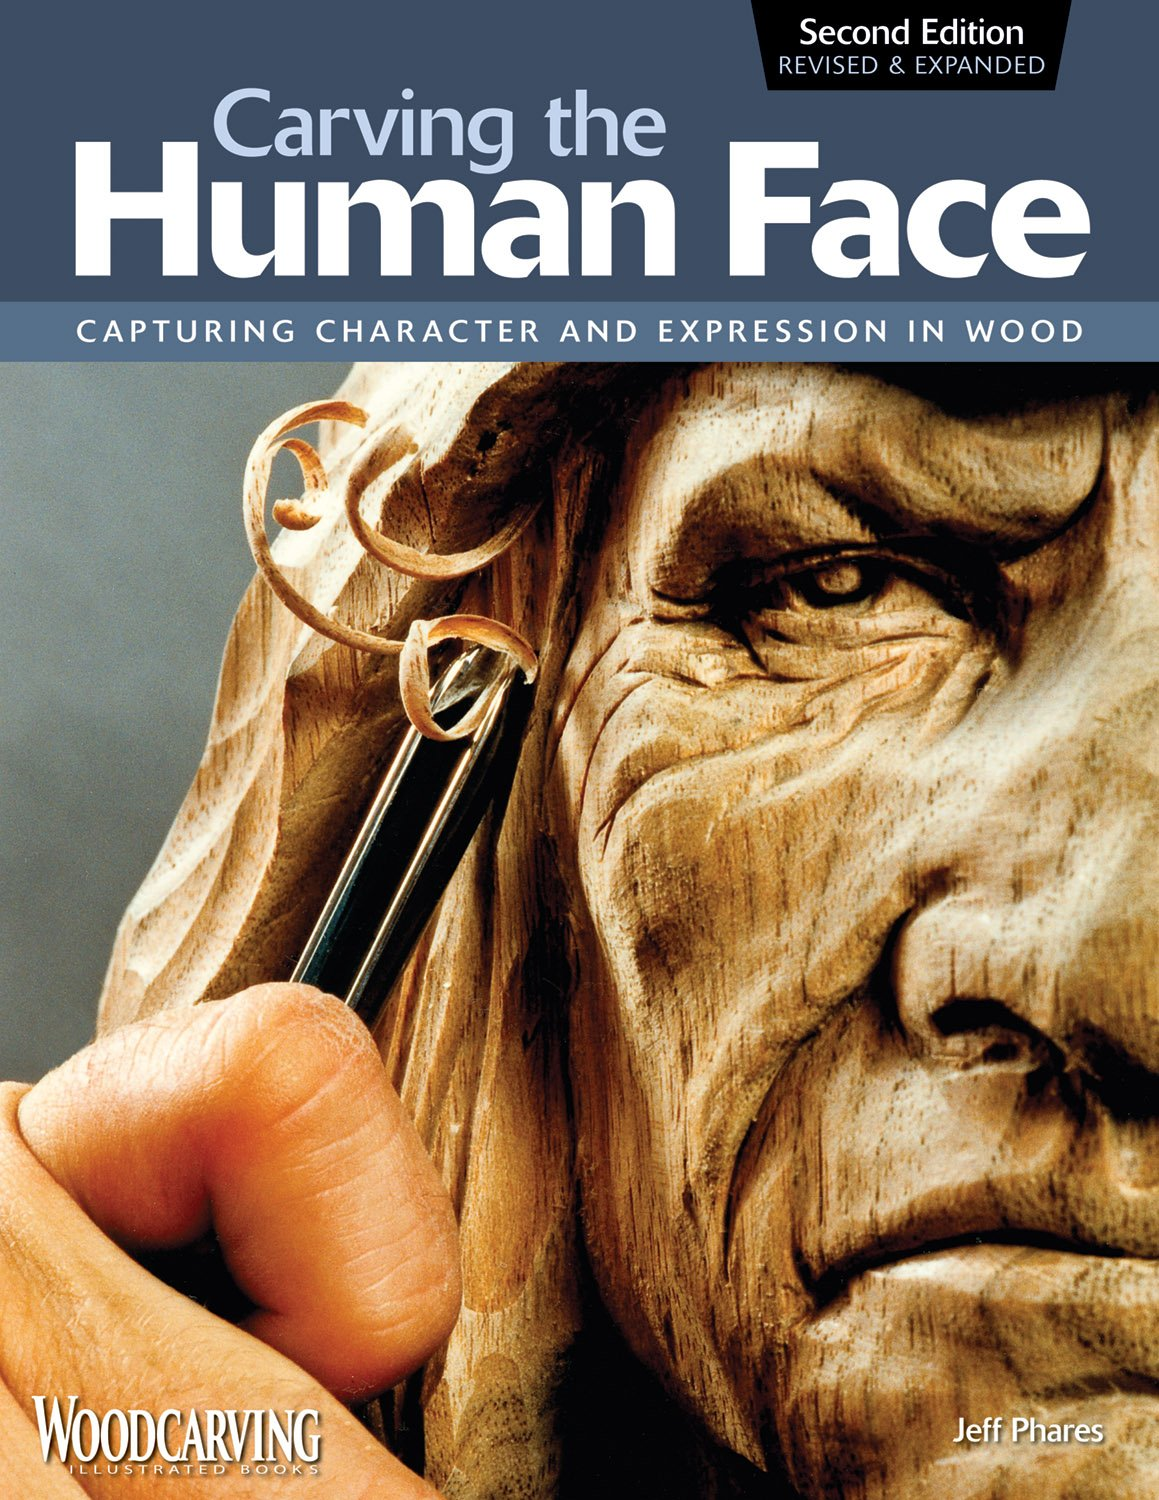 Carving the human face second edition revised expanded carving the human face second edition revised expanded capturing character and expression in wood jeff phares 9781565234246 amazon books fandeluxe Choice Image